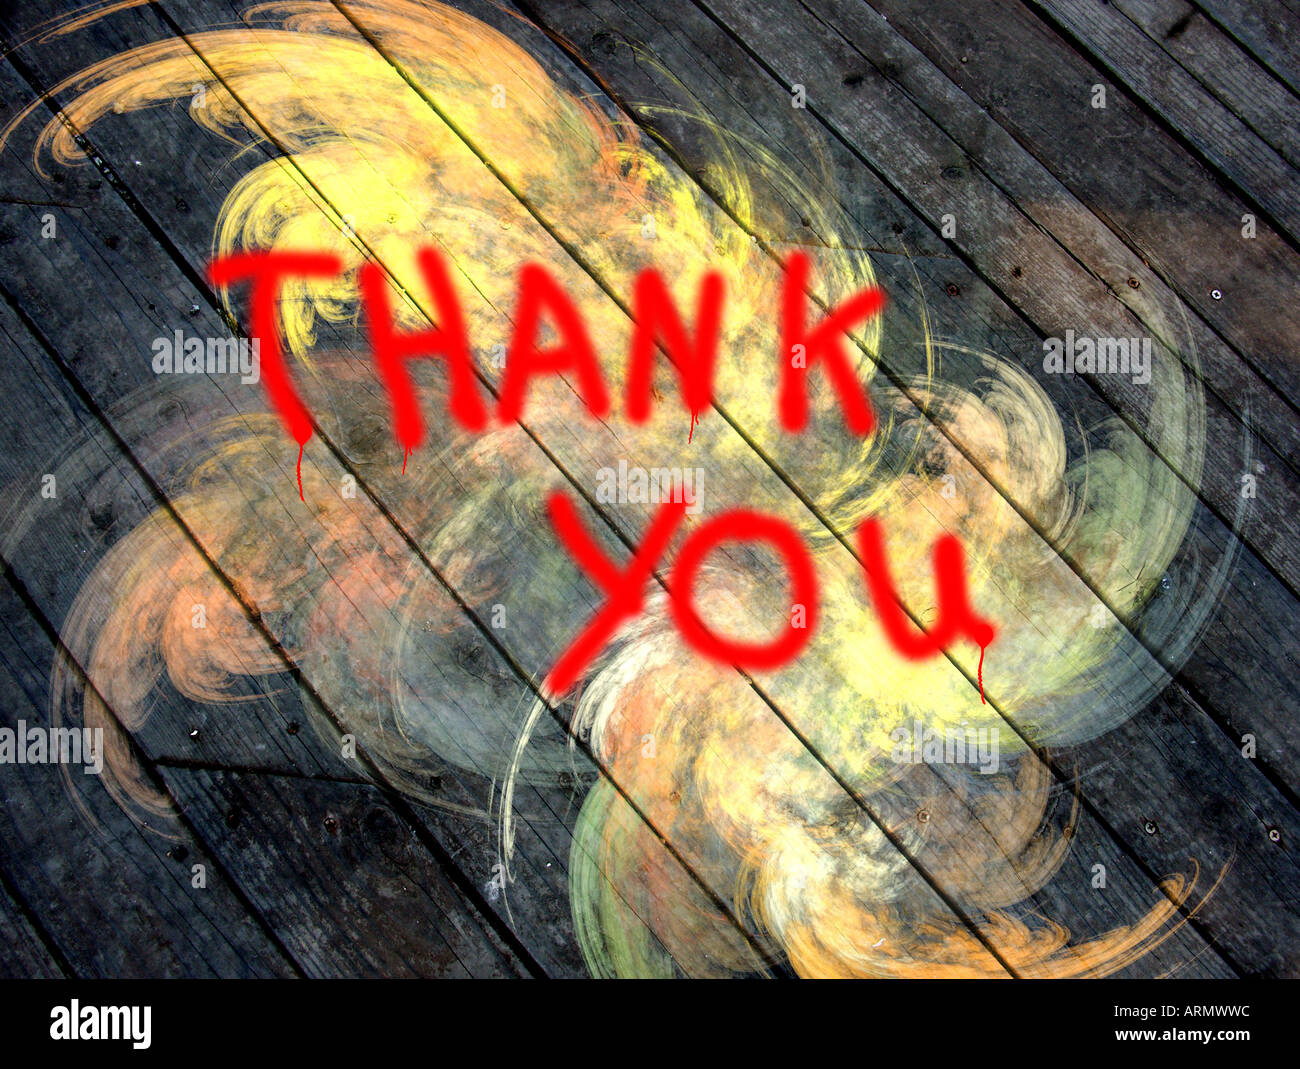 Thank you written on a wall with graffiti